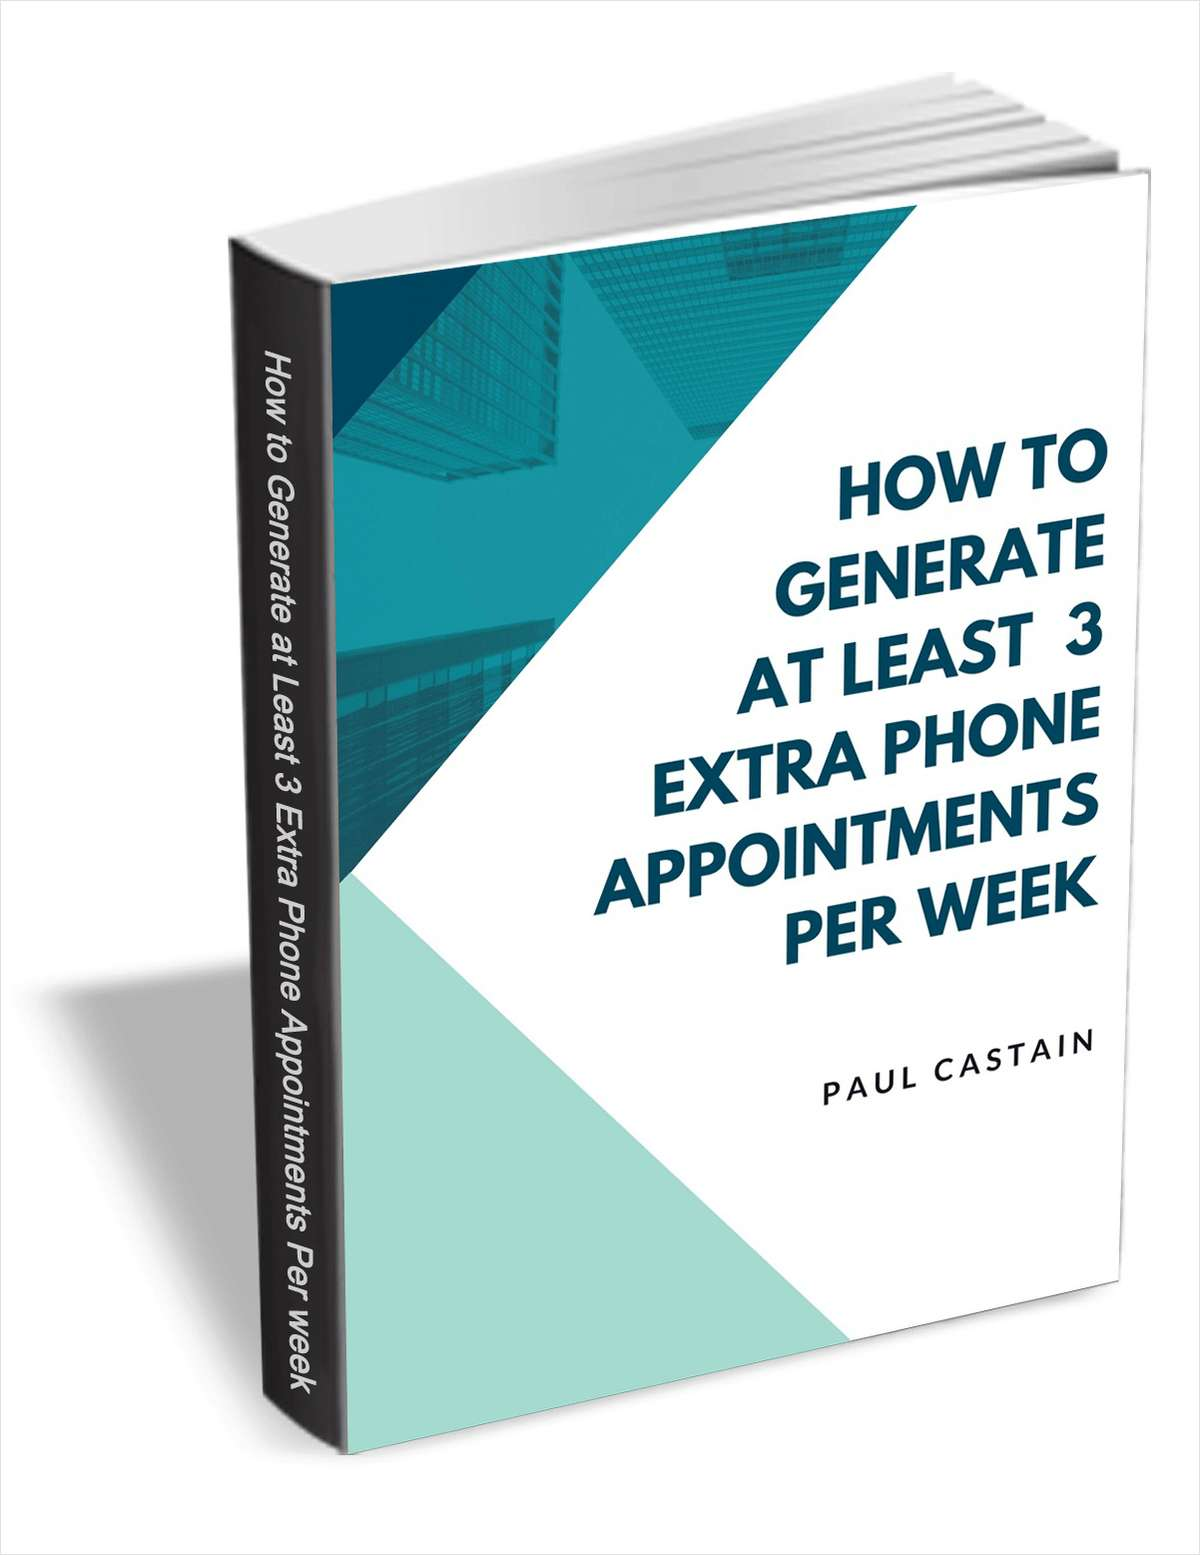 How to Generate At Least 3 Extra Phone Appointments Per Week